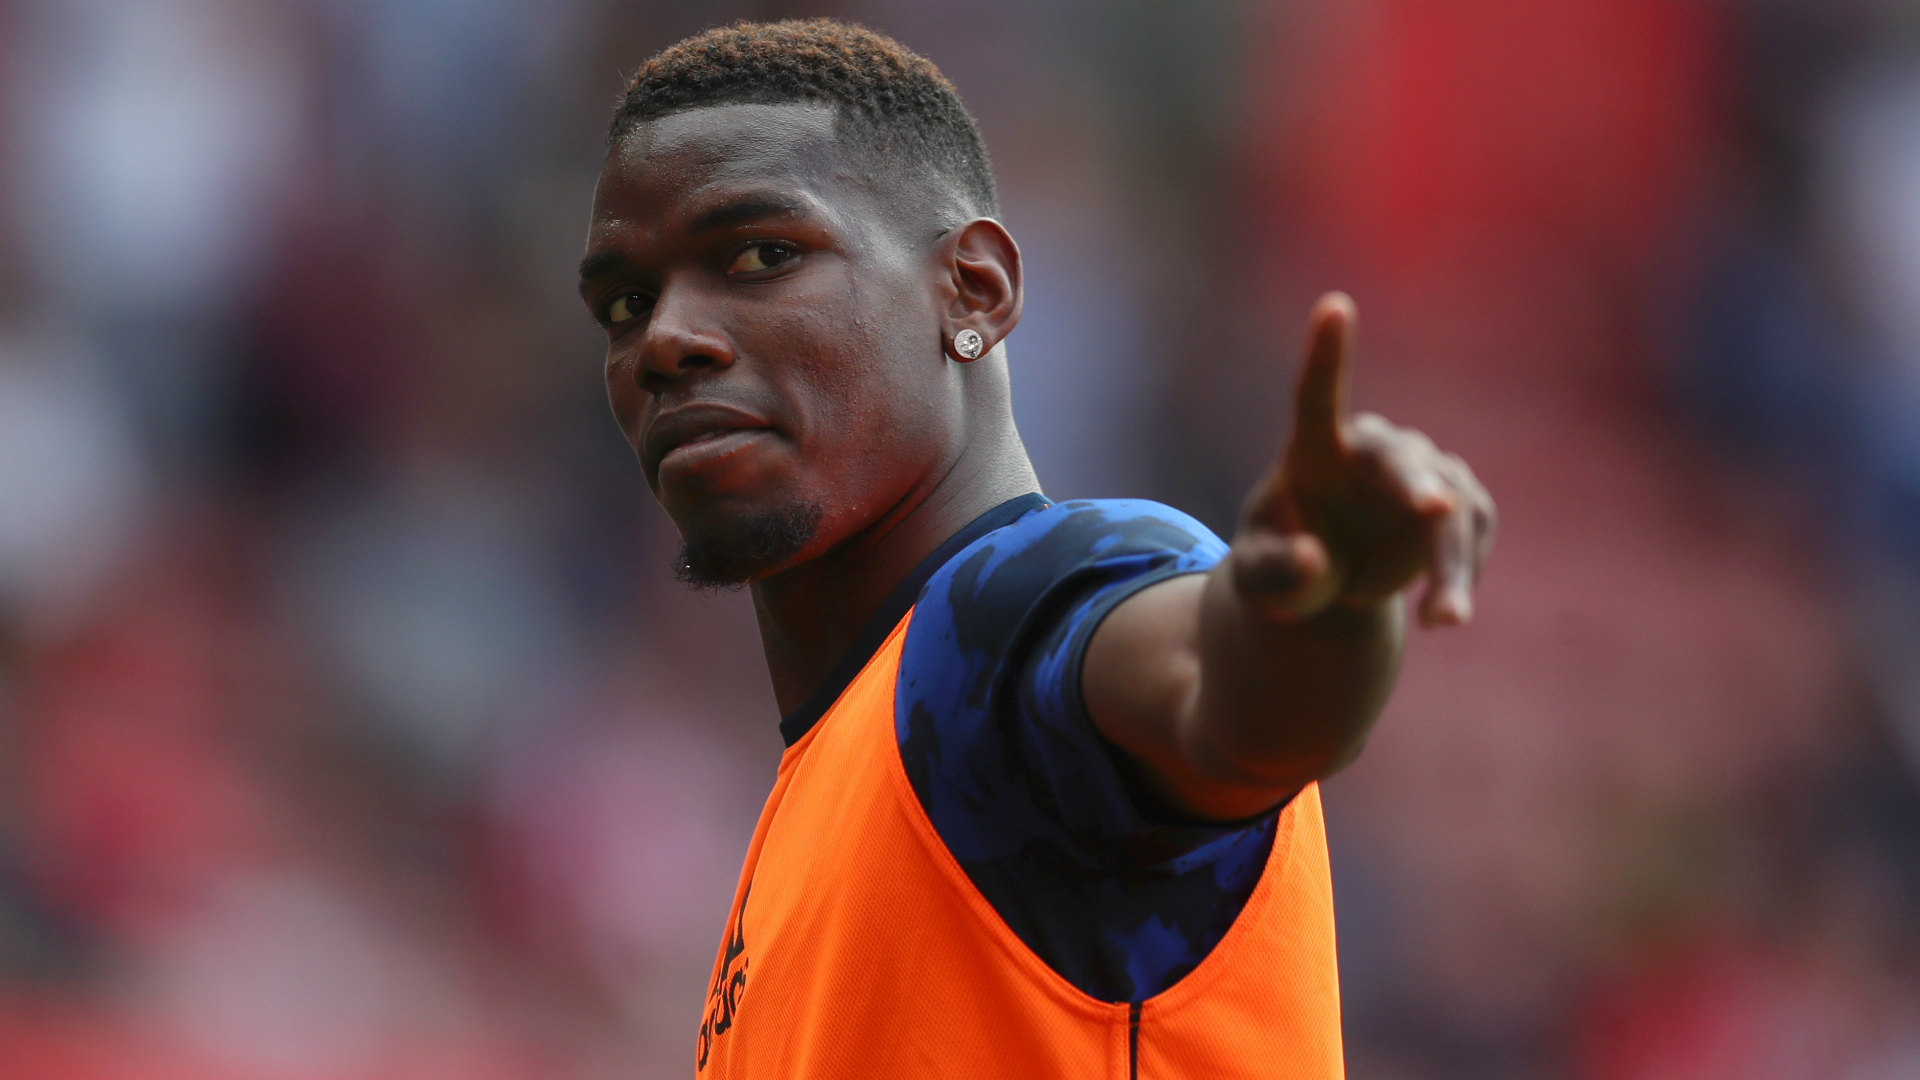 It's personal - Zidane won't divulge details of Pogba meeting